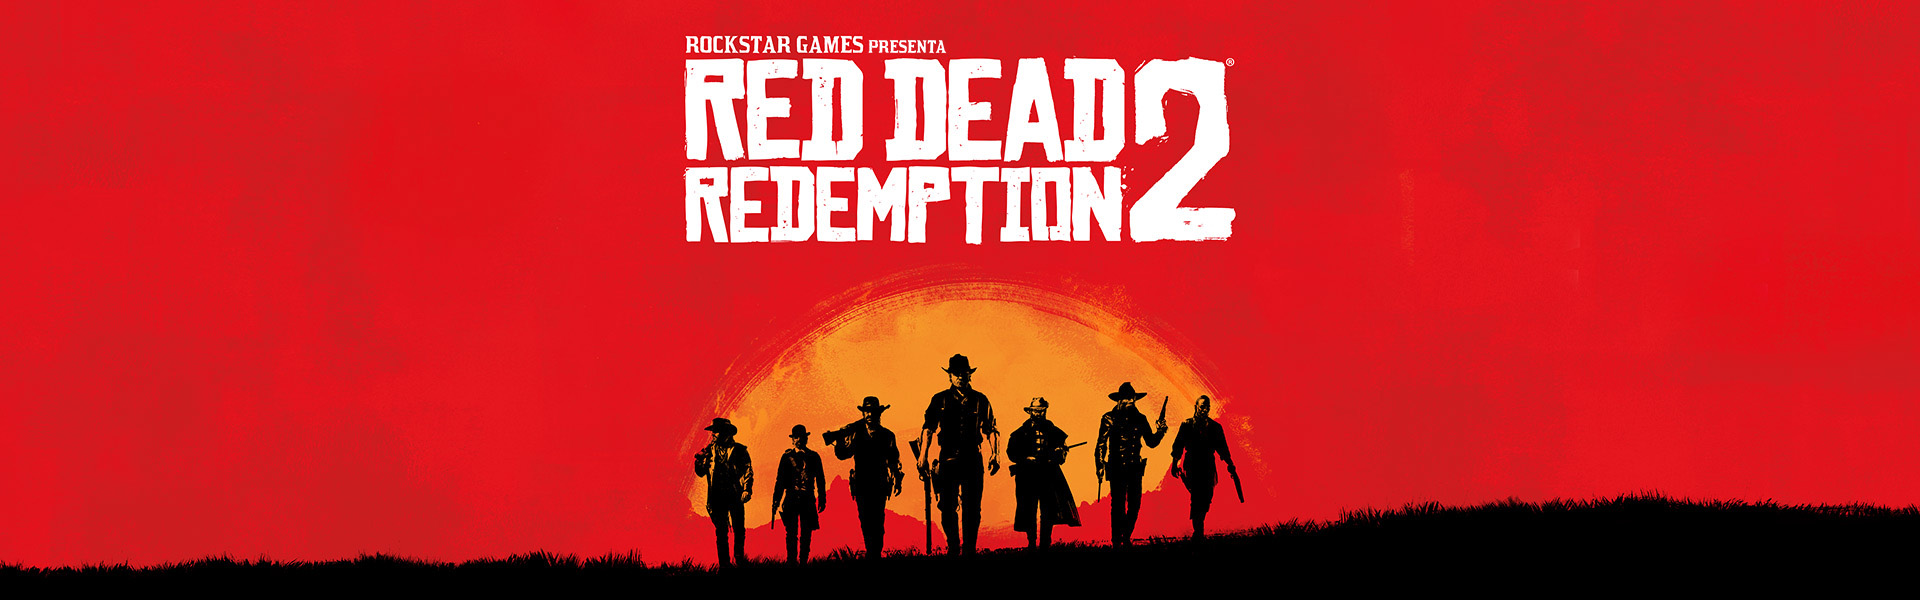 Red Dead Redemption 2 Hero